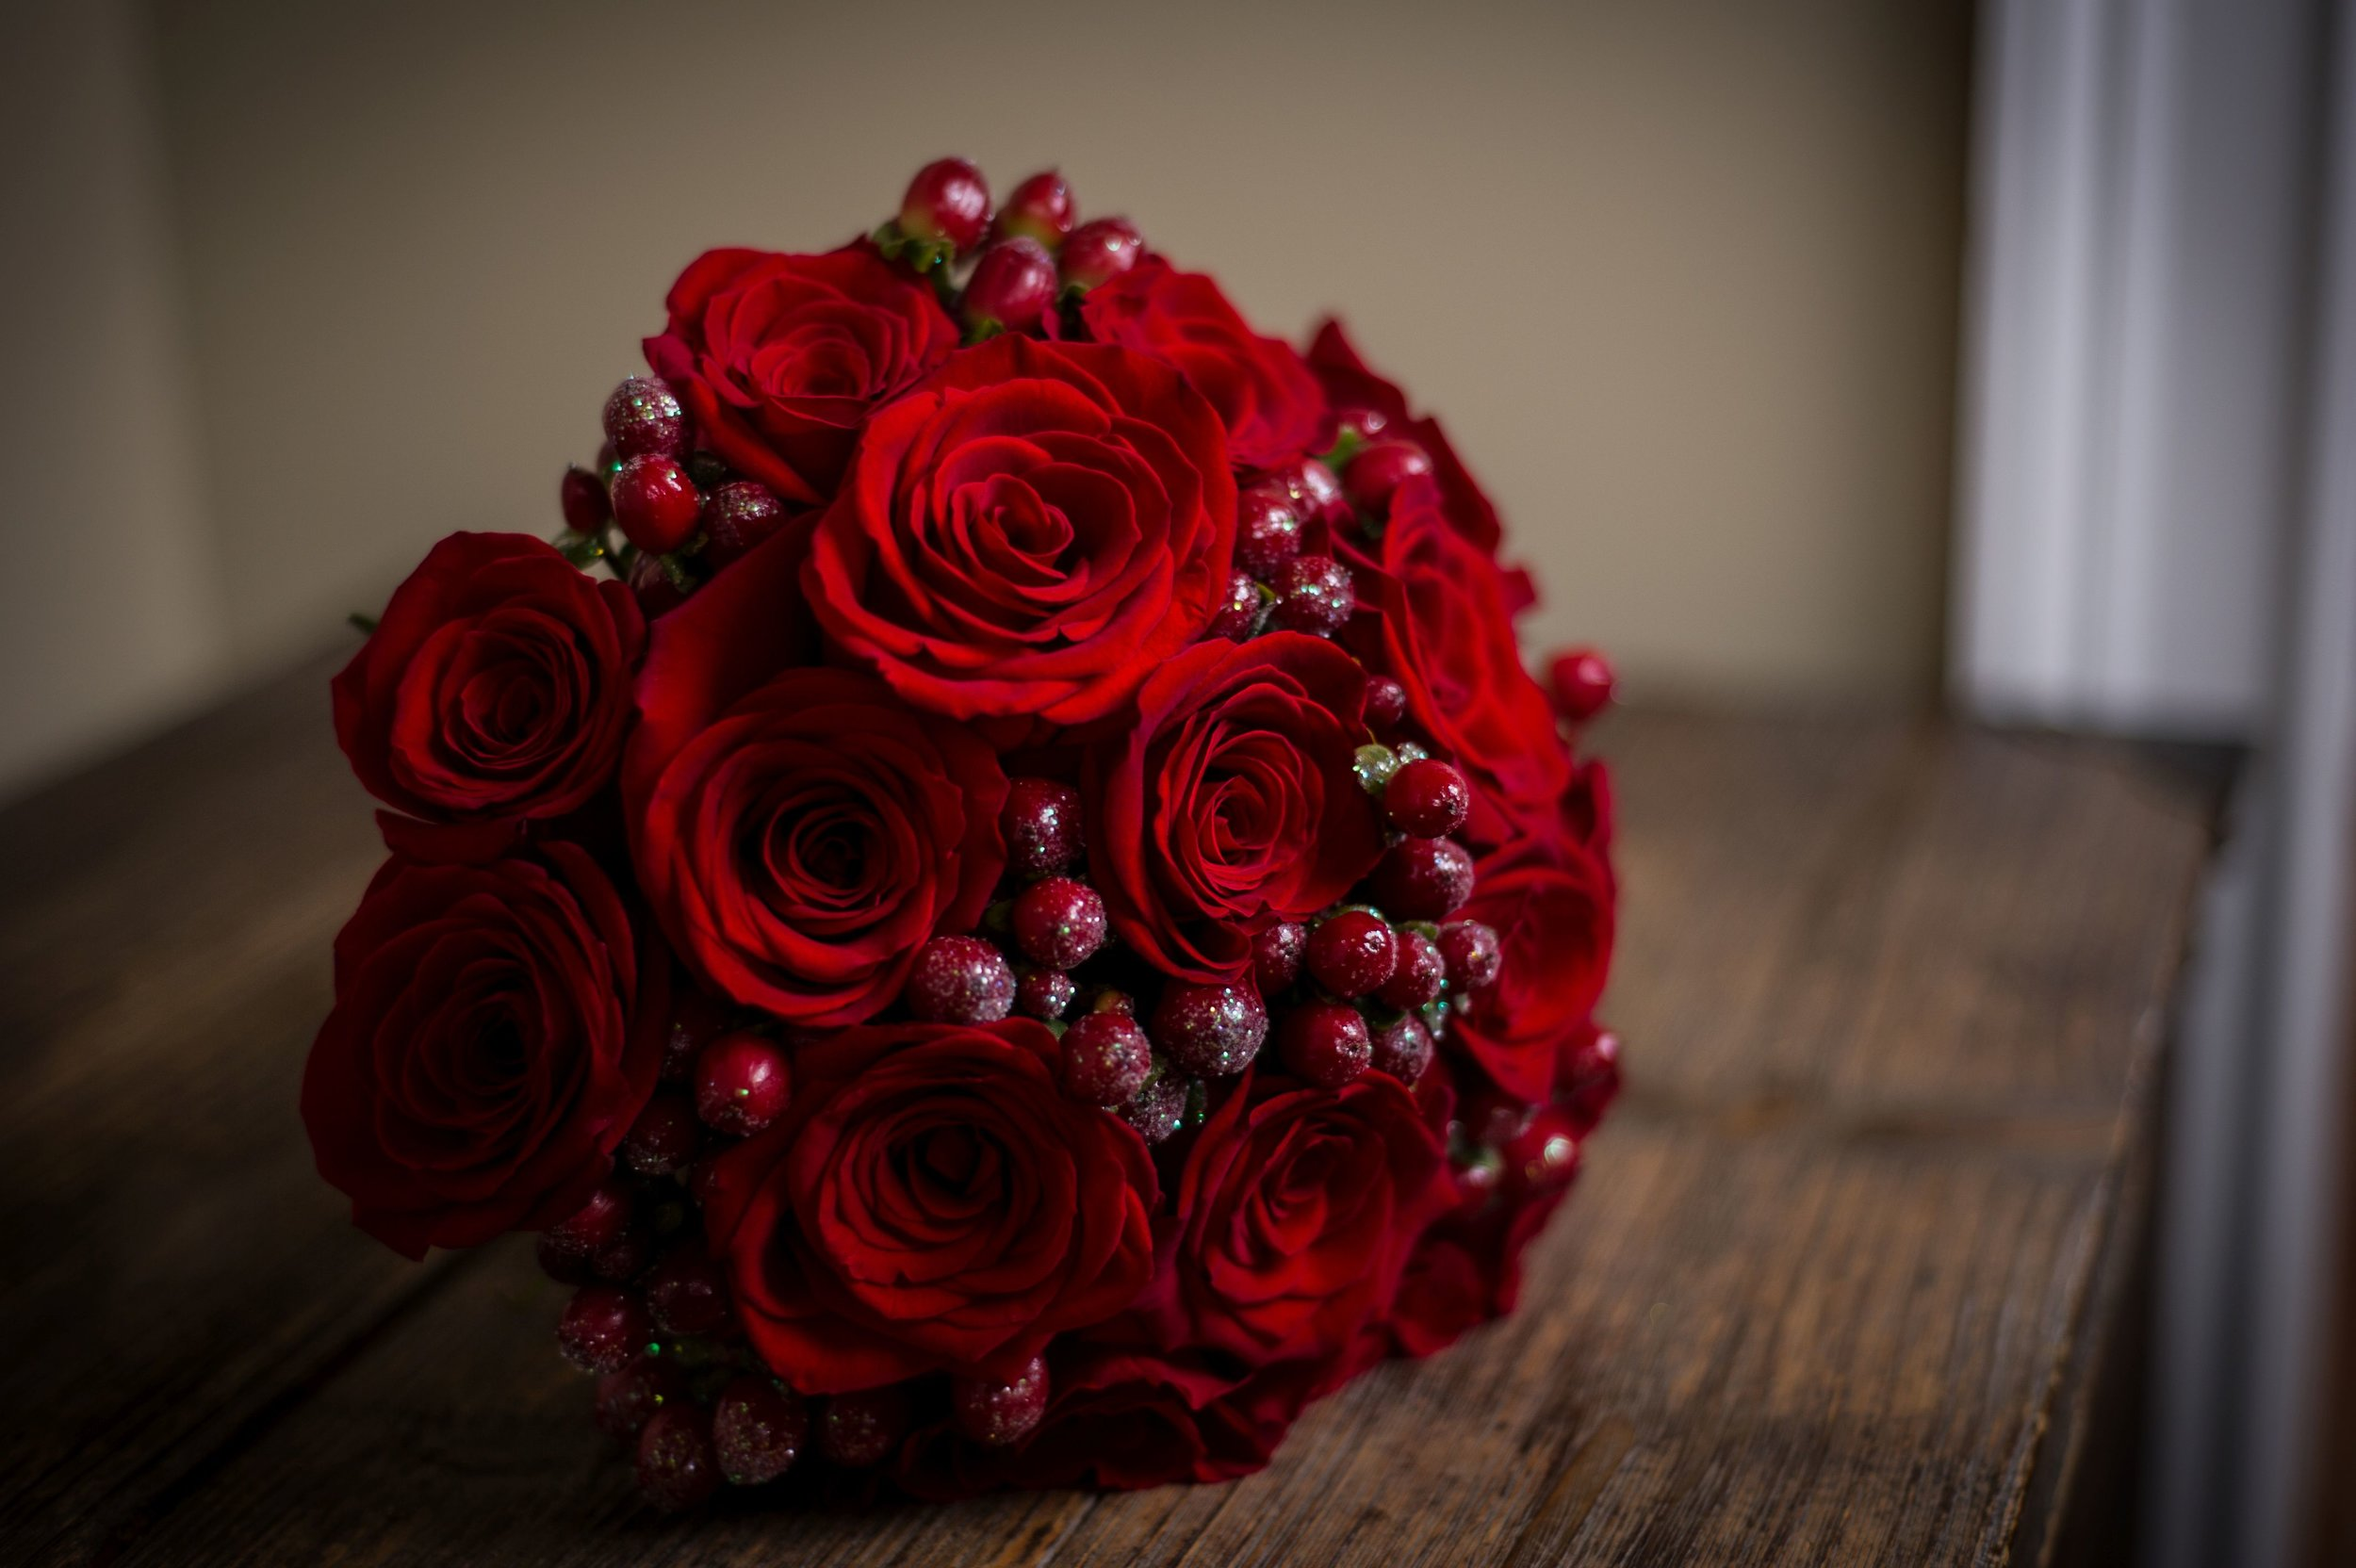 Red Roses and cranberries bridal bouquet from Bouquets & Beyond of Woodbury CT